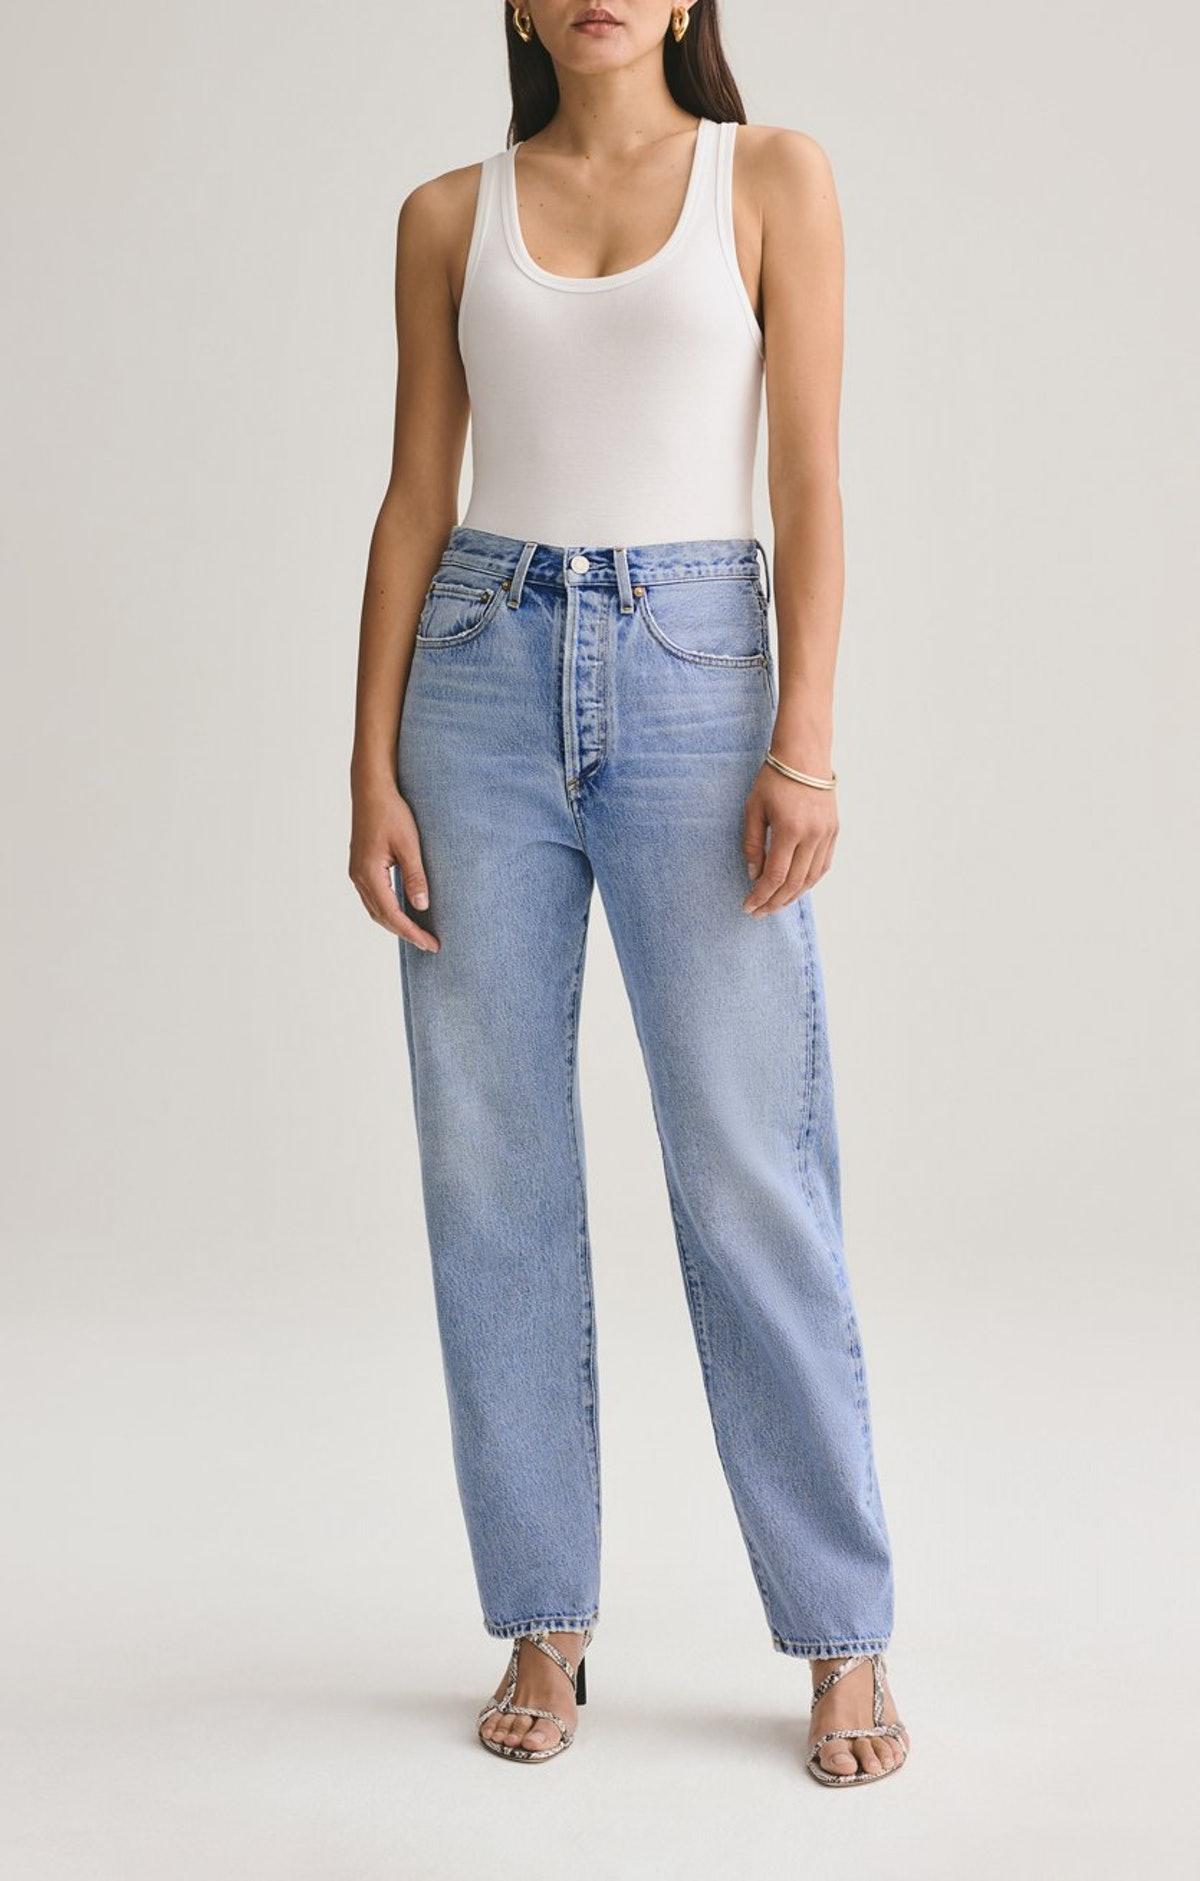 90s Mid-Rise Loose Fit